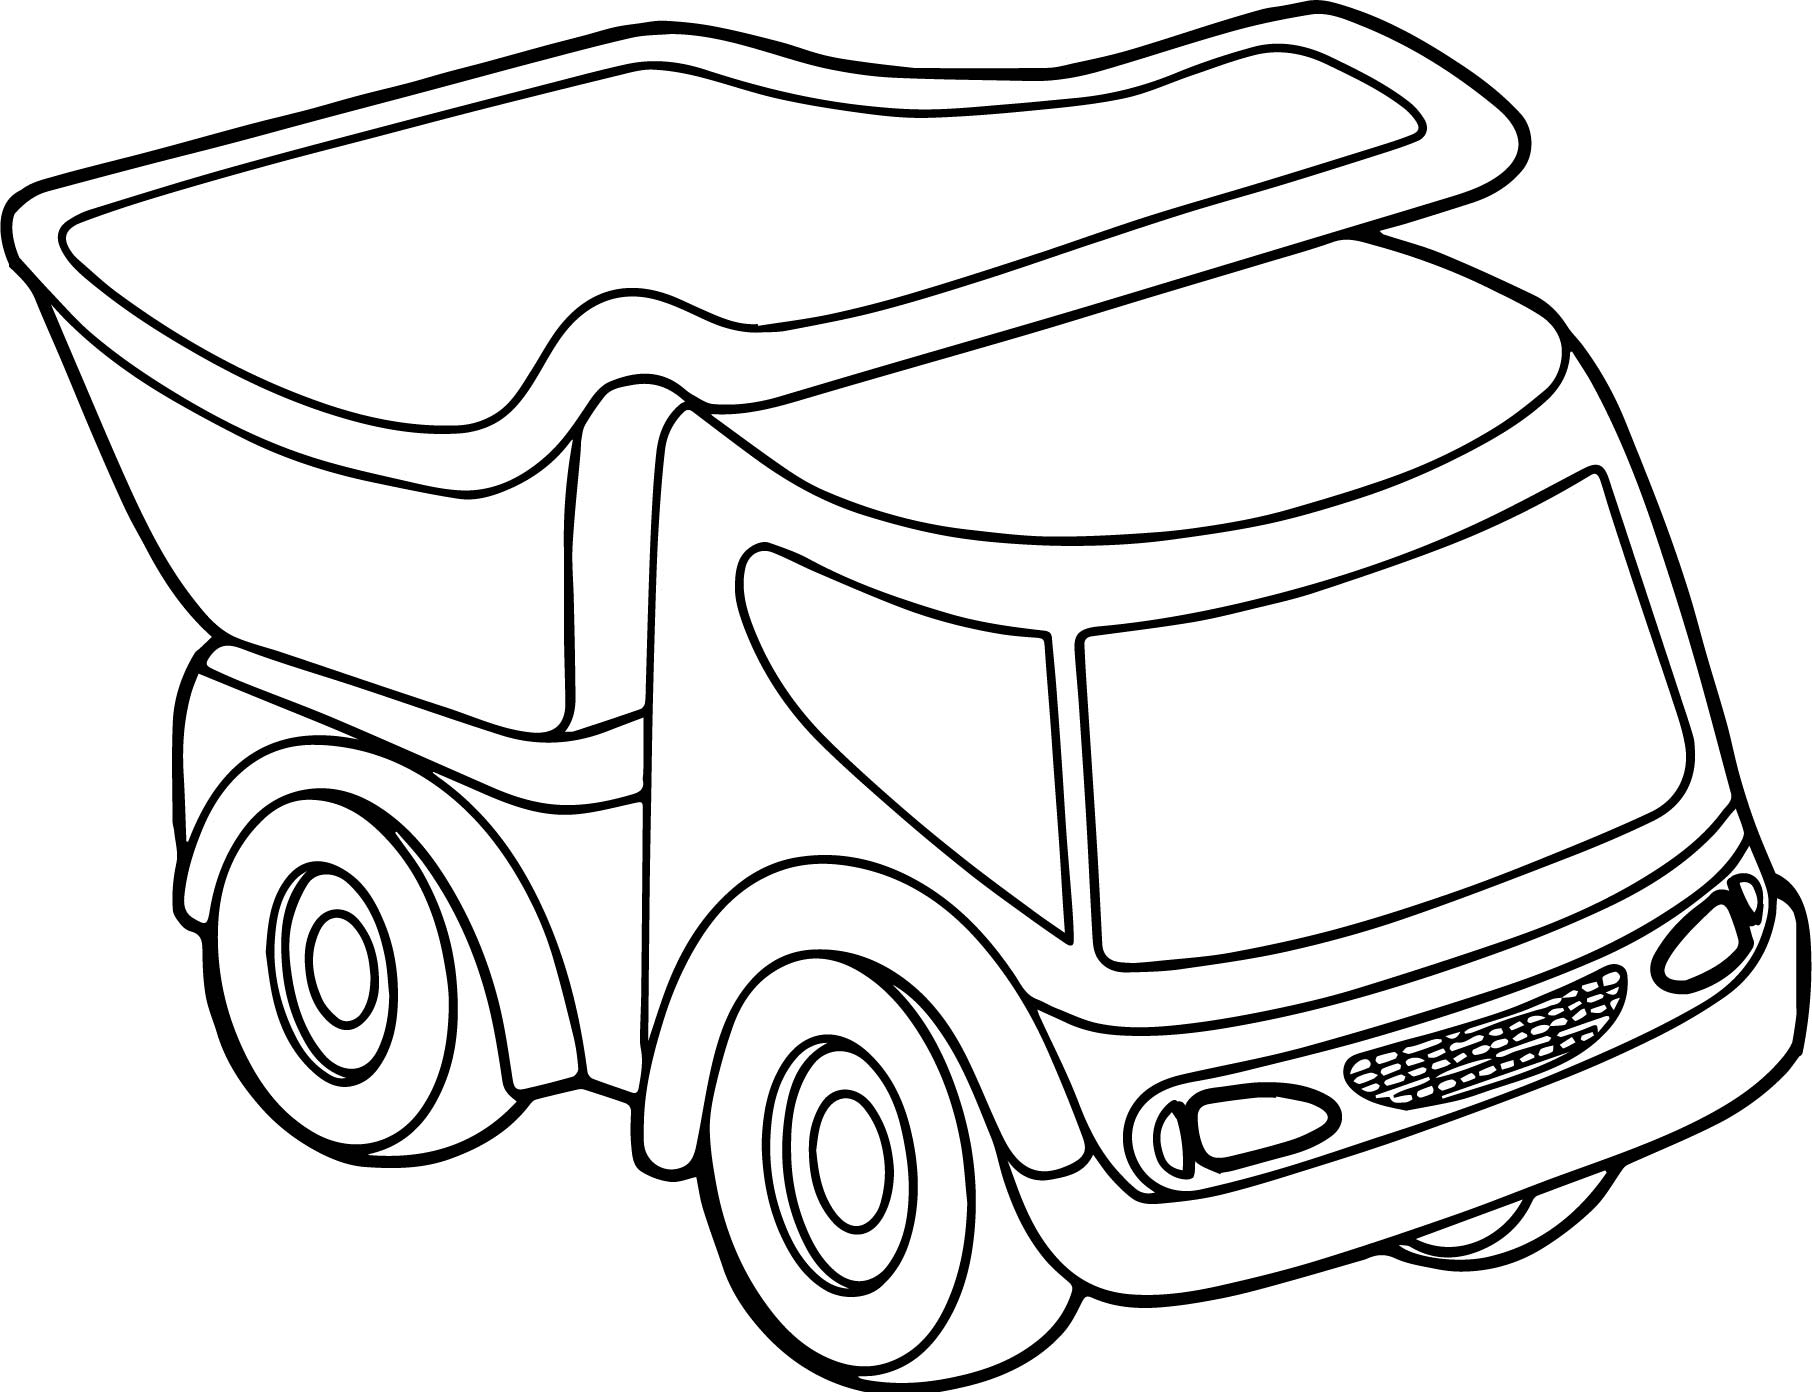 Toy Car Truck Coloring Page Wecoloringpage